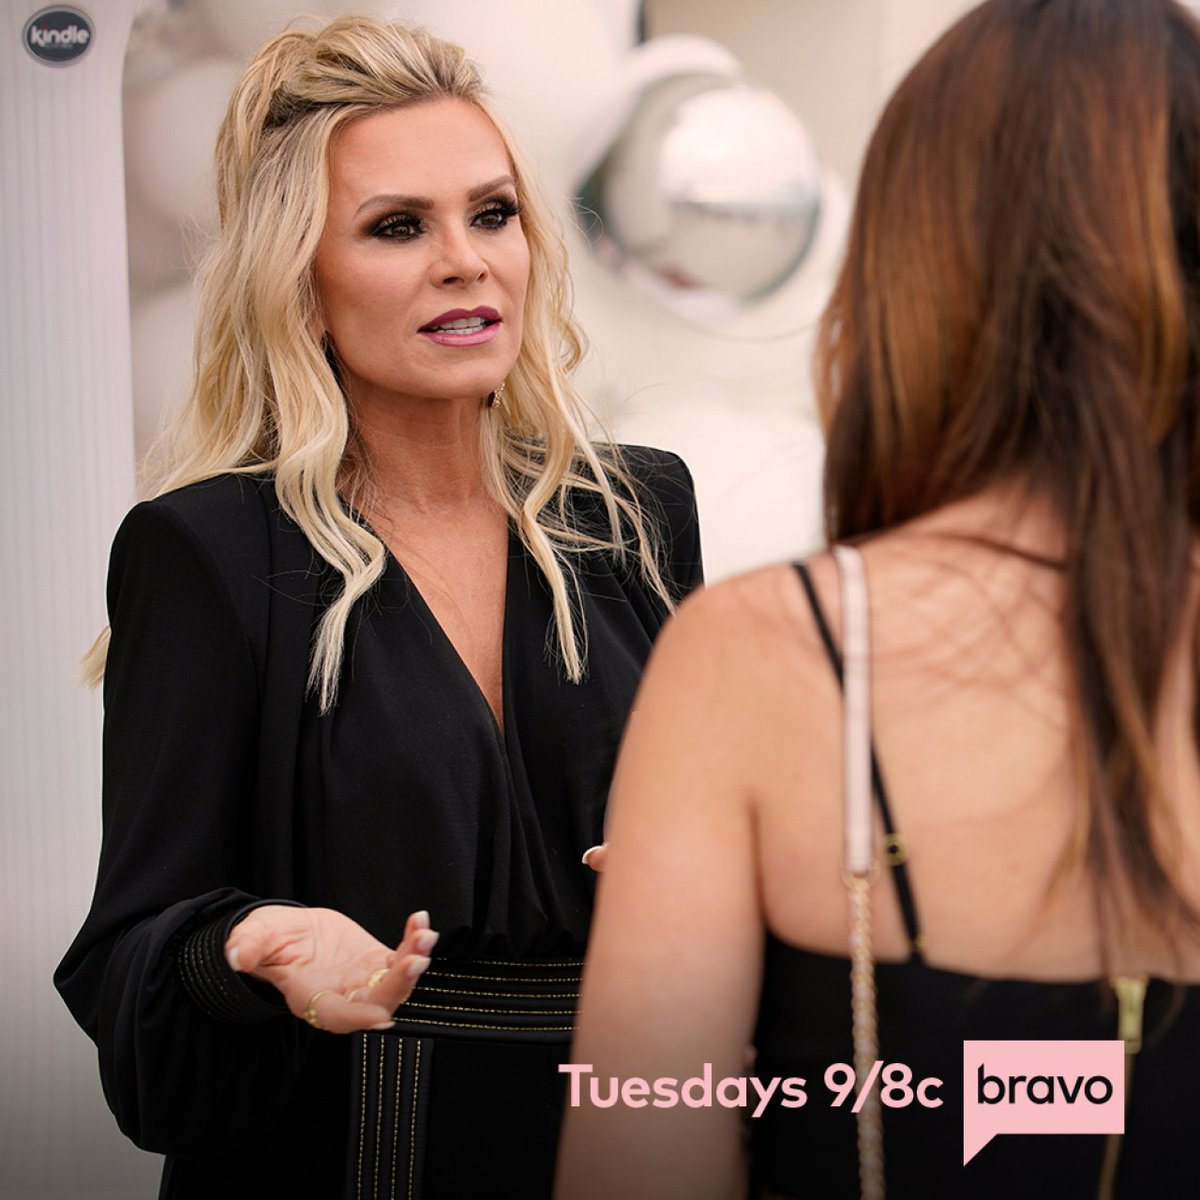 WE'RE ONE WEEK AWAY! Don't miss the season premiere of #RHOC Tuesday @ 9/8c on @BravoTV!